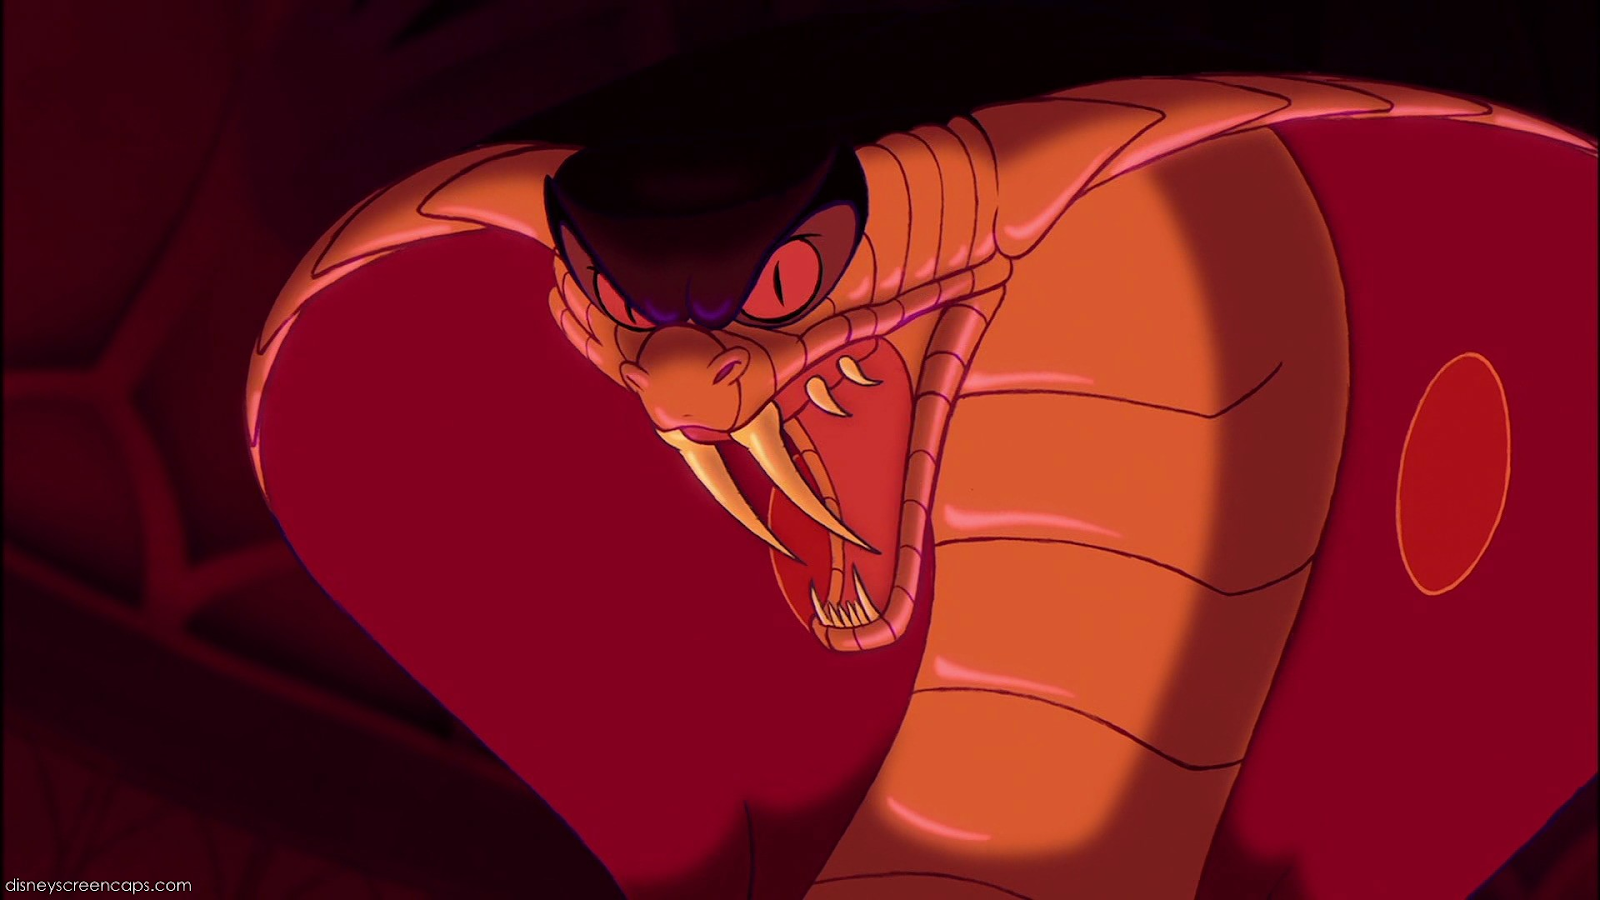 Jafar as a snake